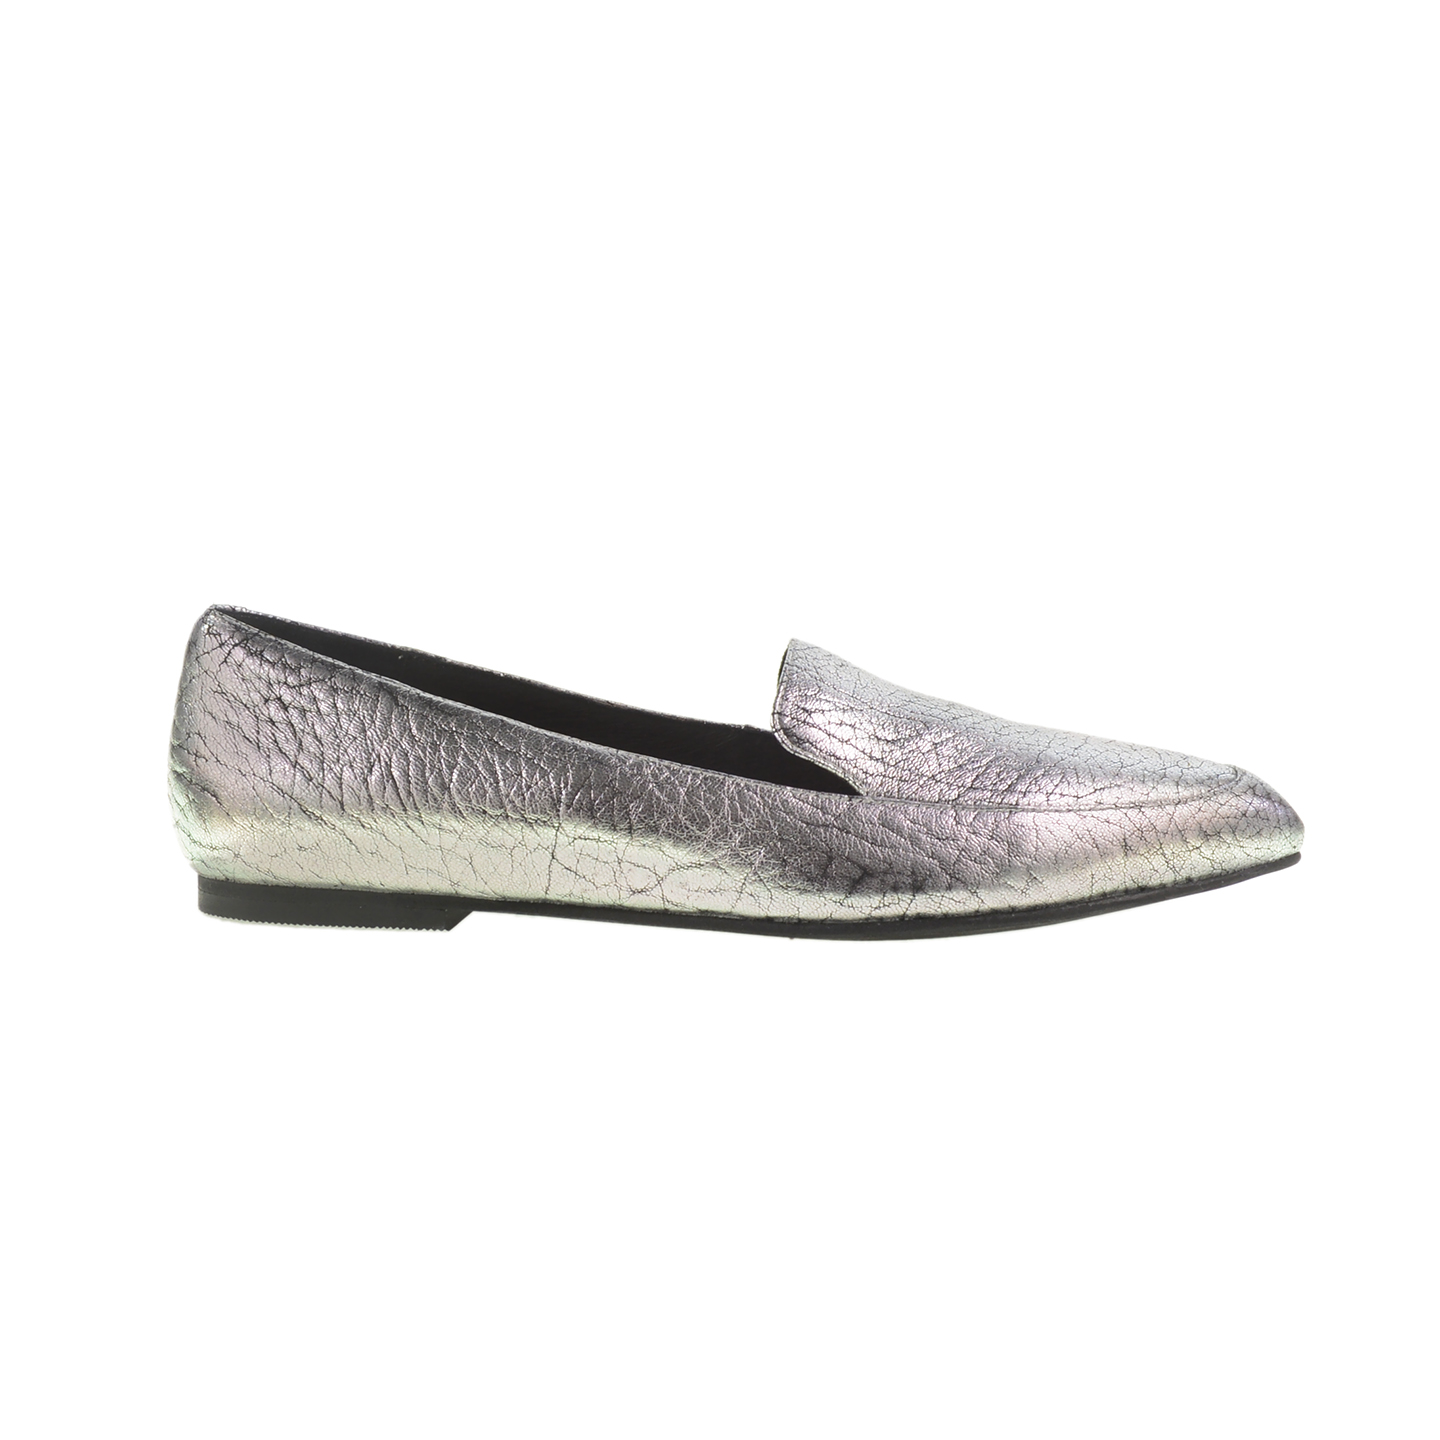 Kristin Cavallari Chandy Metallic Loafer | Chinese Laundry